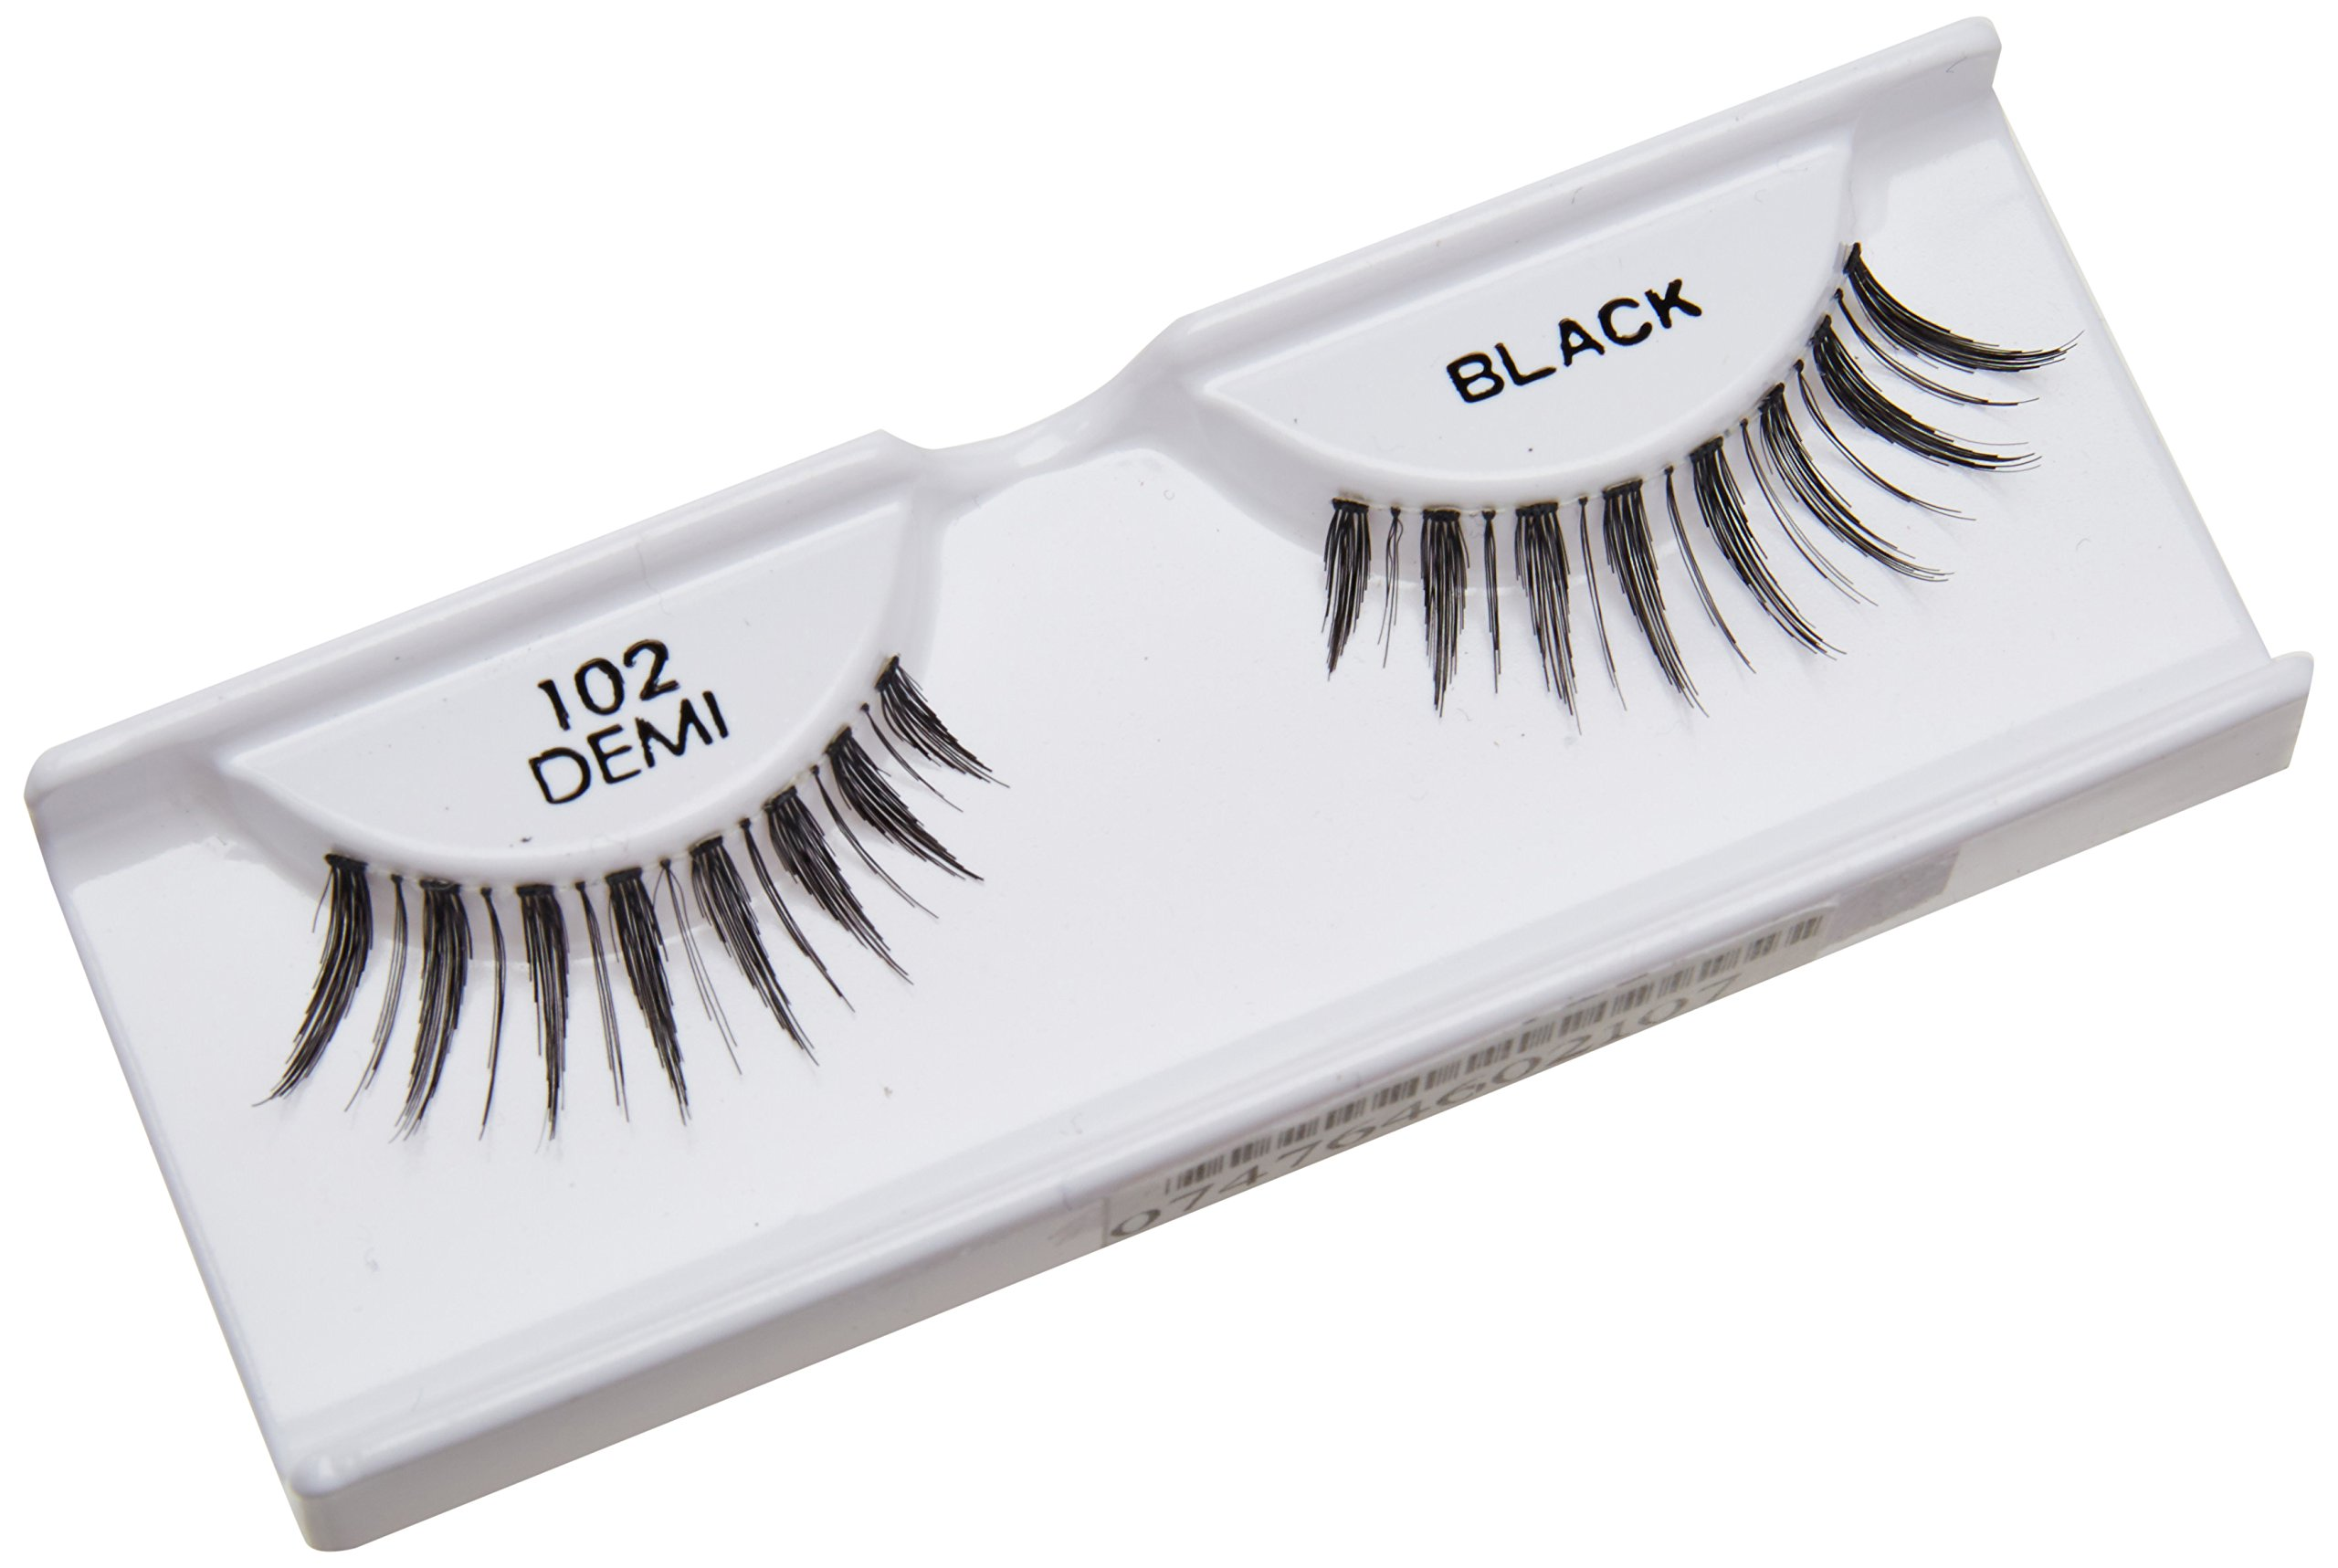 fb18d645da8 Amazon.com : Ardell Fashion Lashes Pair - 102 Demi, Black (Pack of 4) : Fake  Eyelashes And Adhesives : Beauty